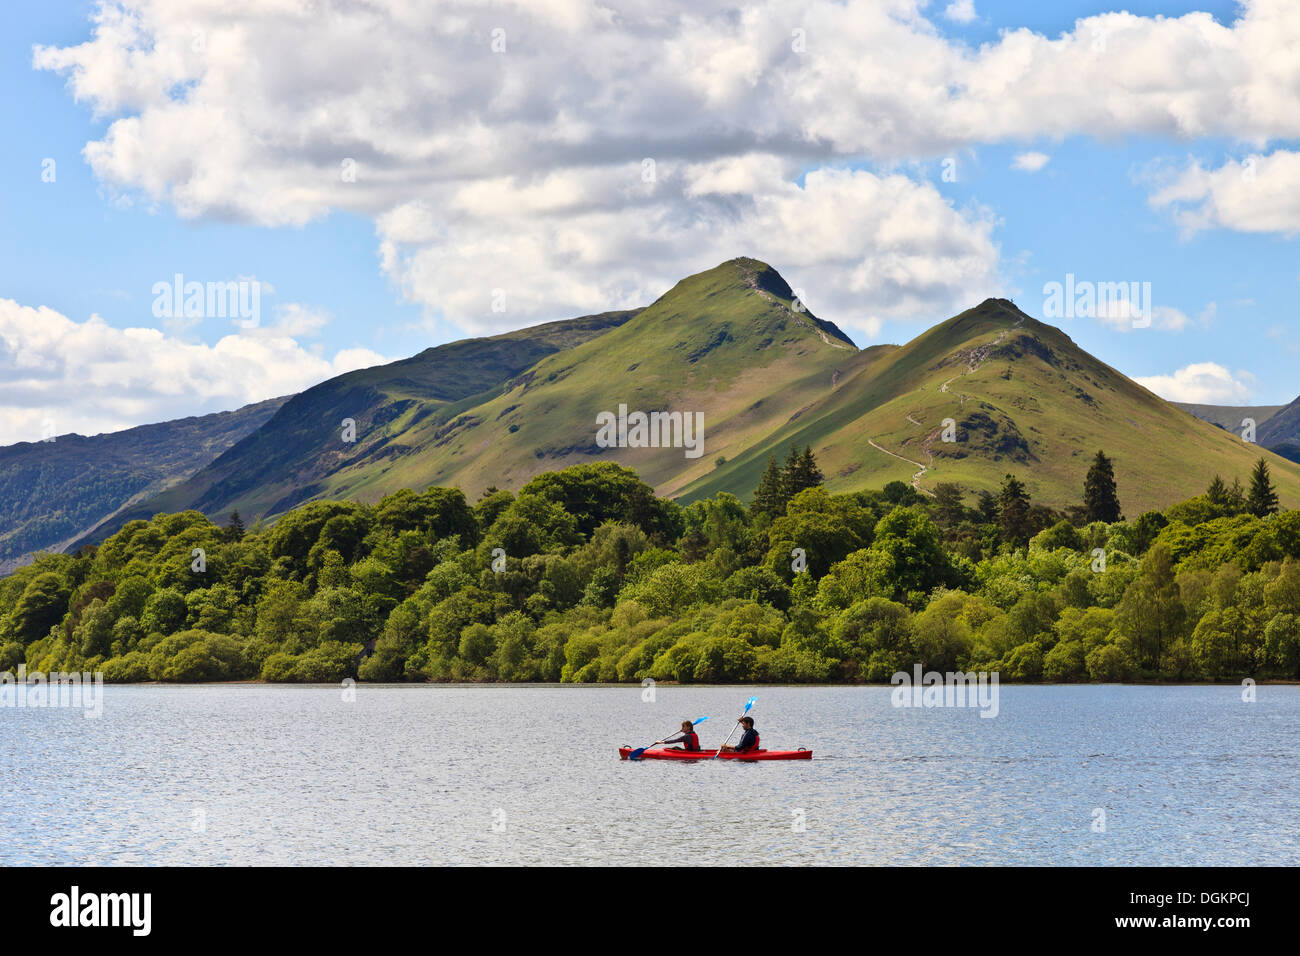 Two people paddle a red canoe on Derwent Water with Catbells in the background. - Stock Image